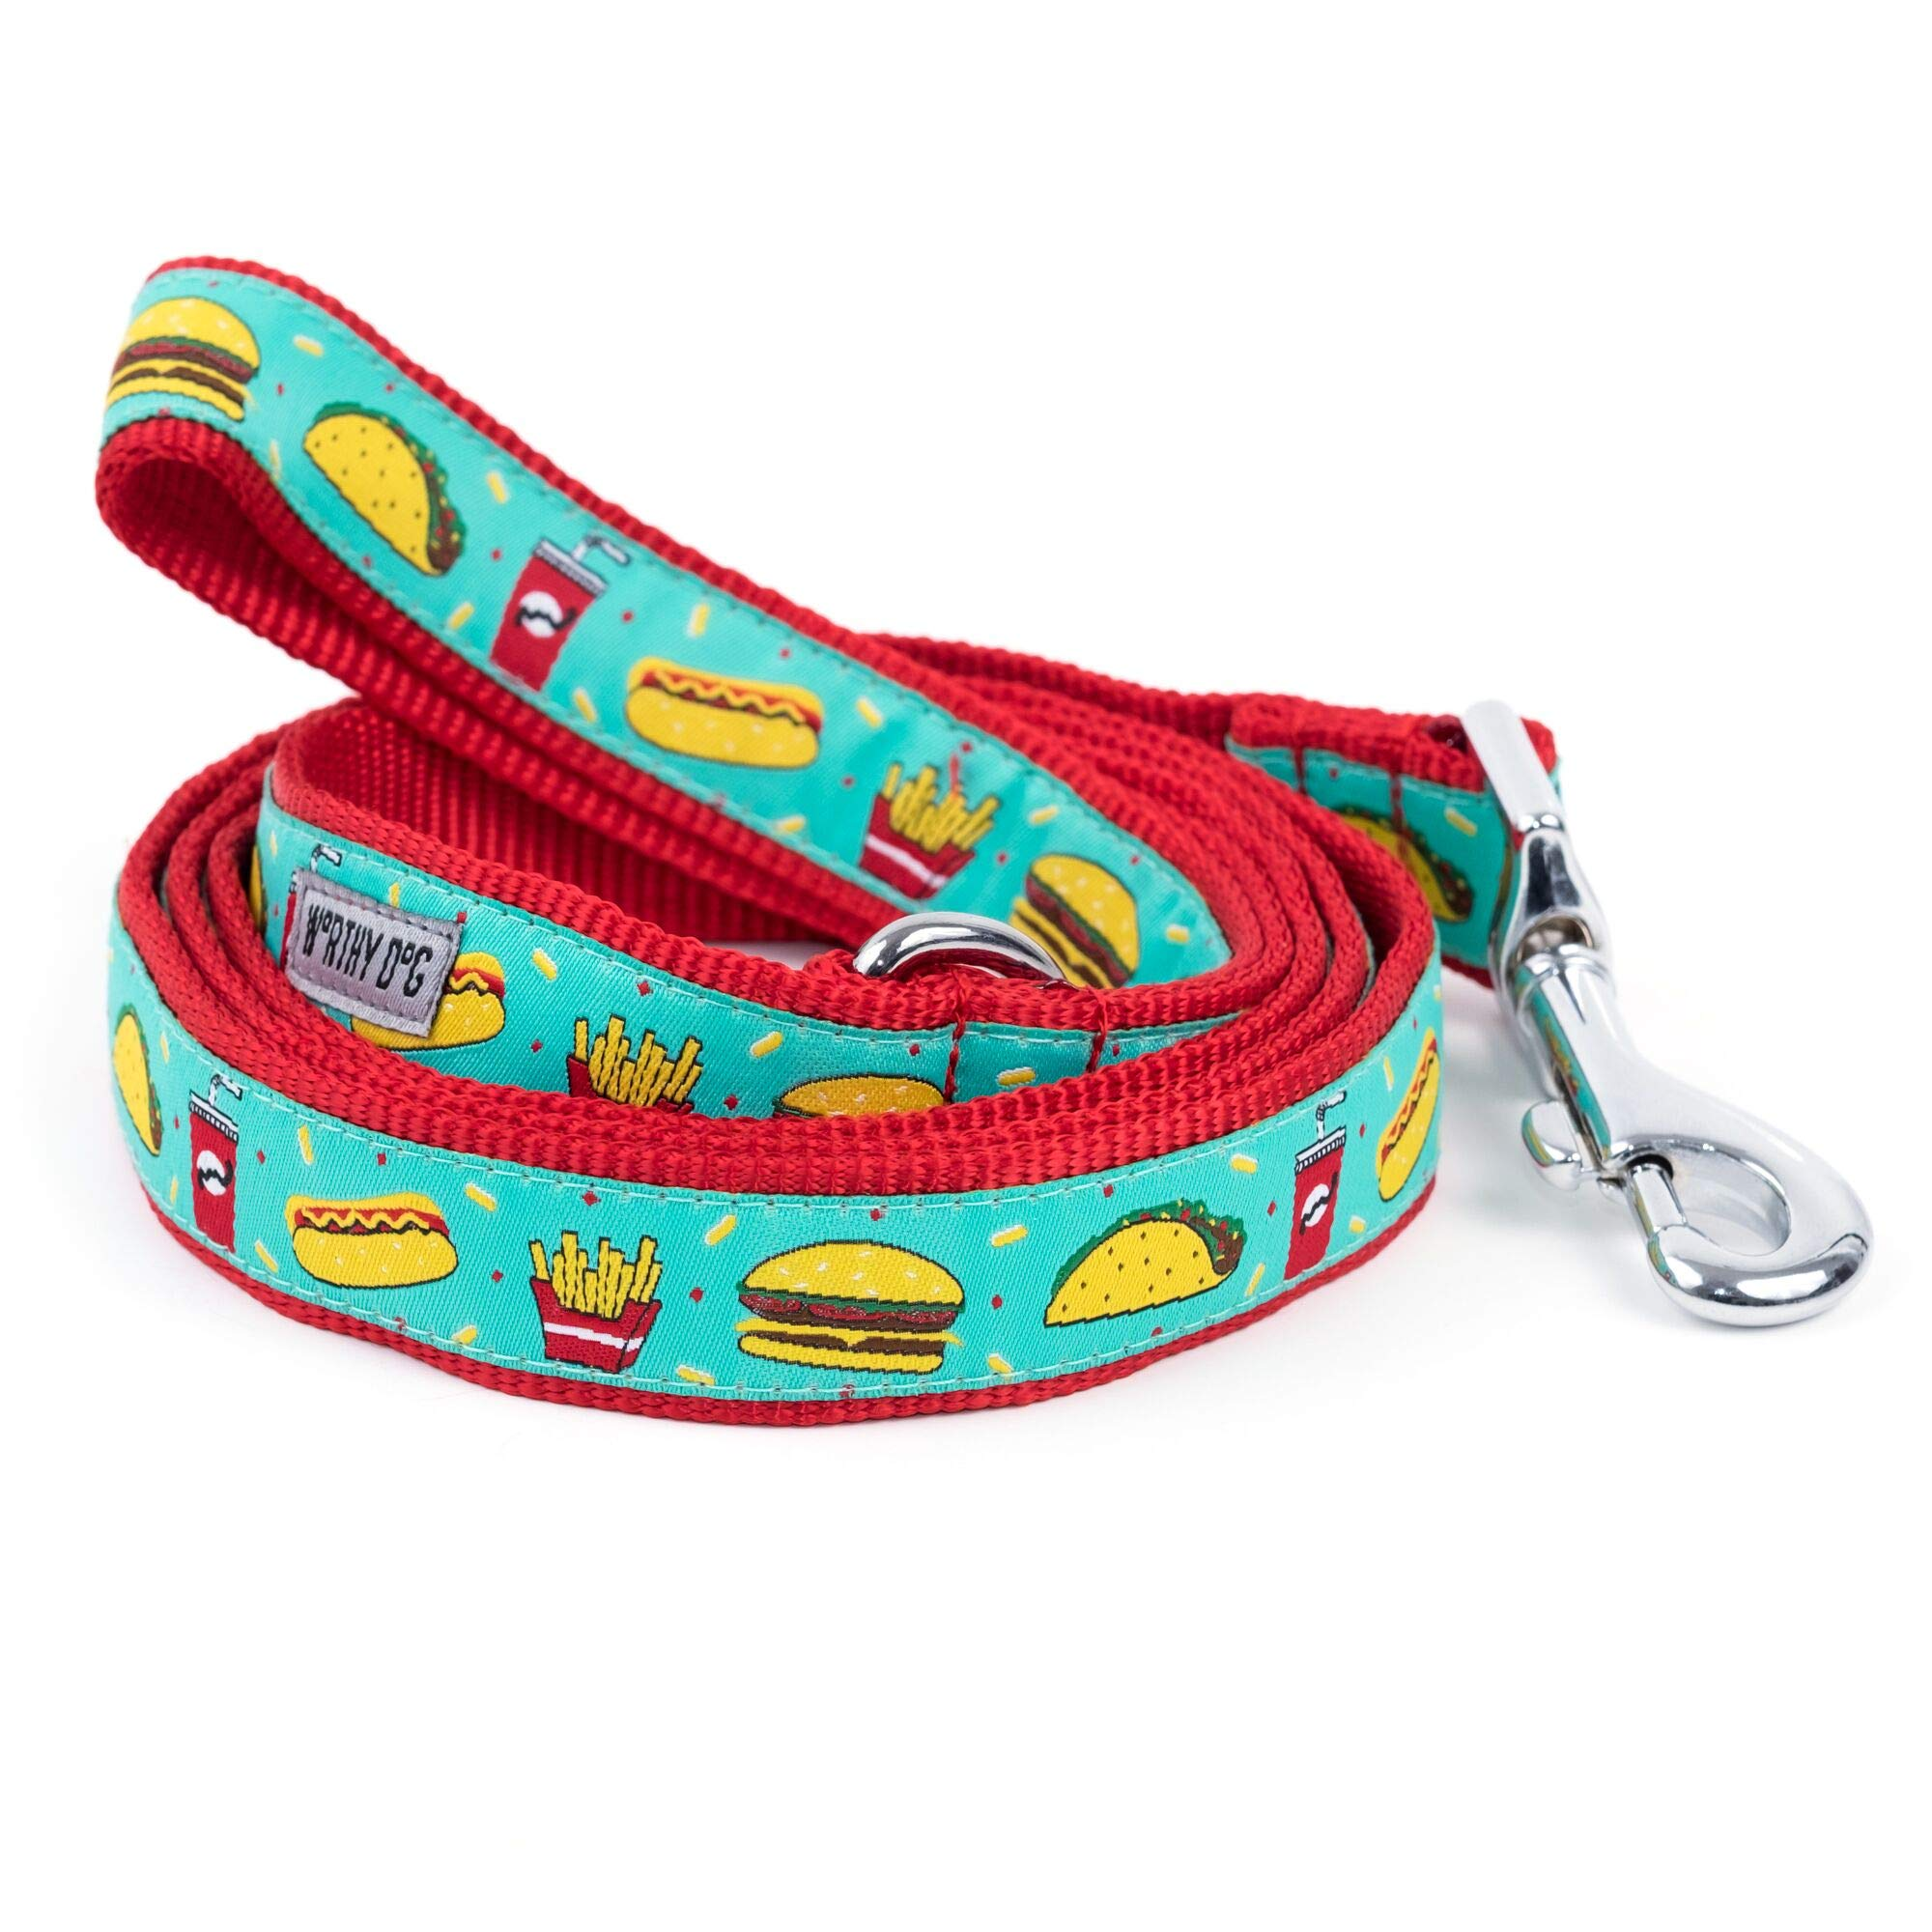 The Worthy Dog Fast Food Fest Hamburger Hotdog Fries Taco Soda Lead/Designer Pet Dog Leash, Turquoise, 1'' x 5'